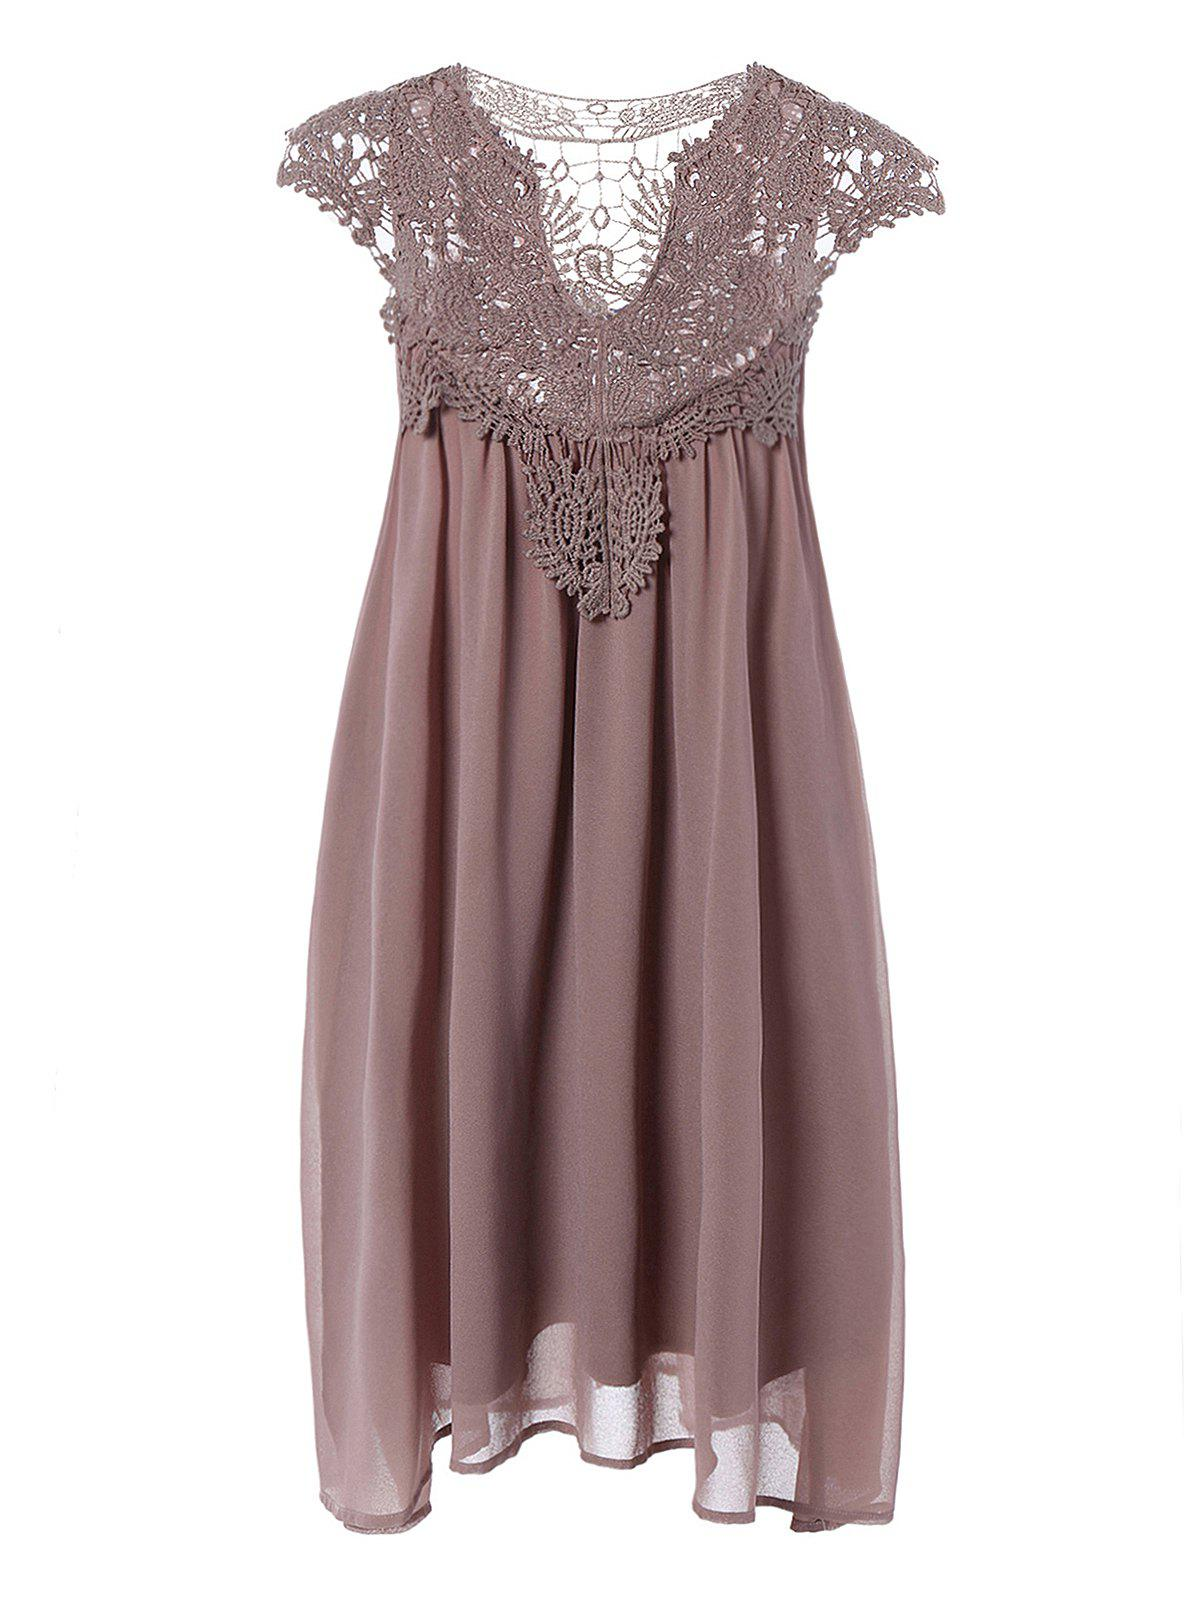 Plus Size Lace Spliced Hollow Out Dress - COFFEE 5XL